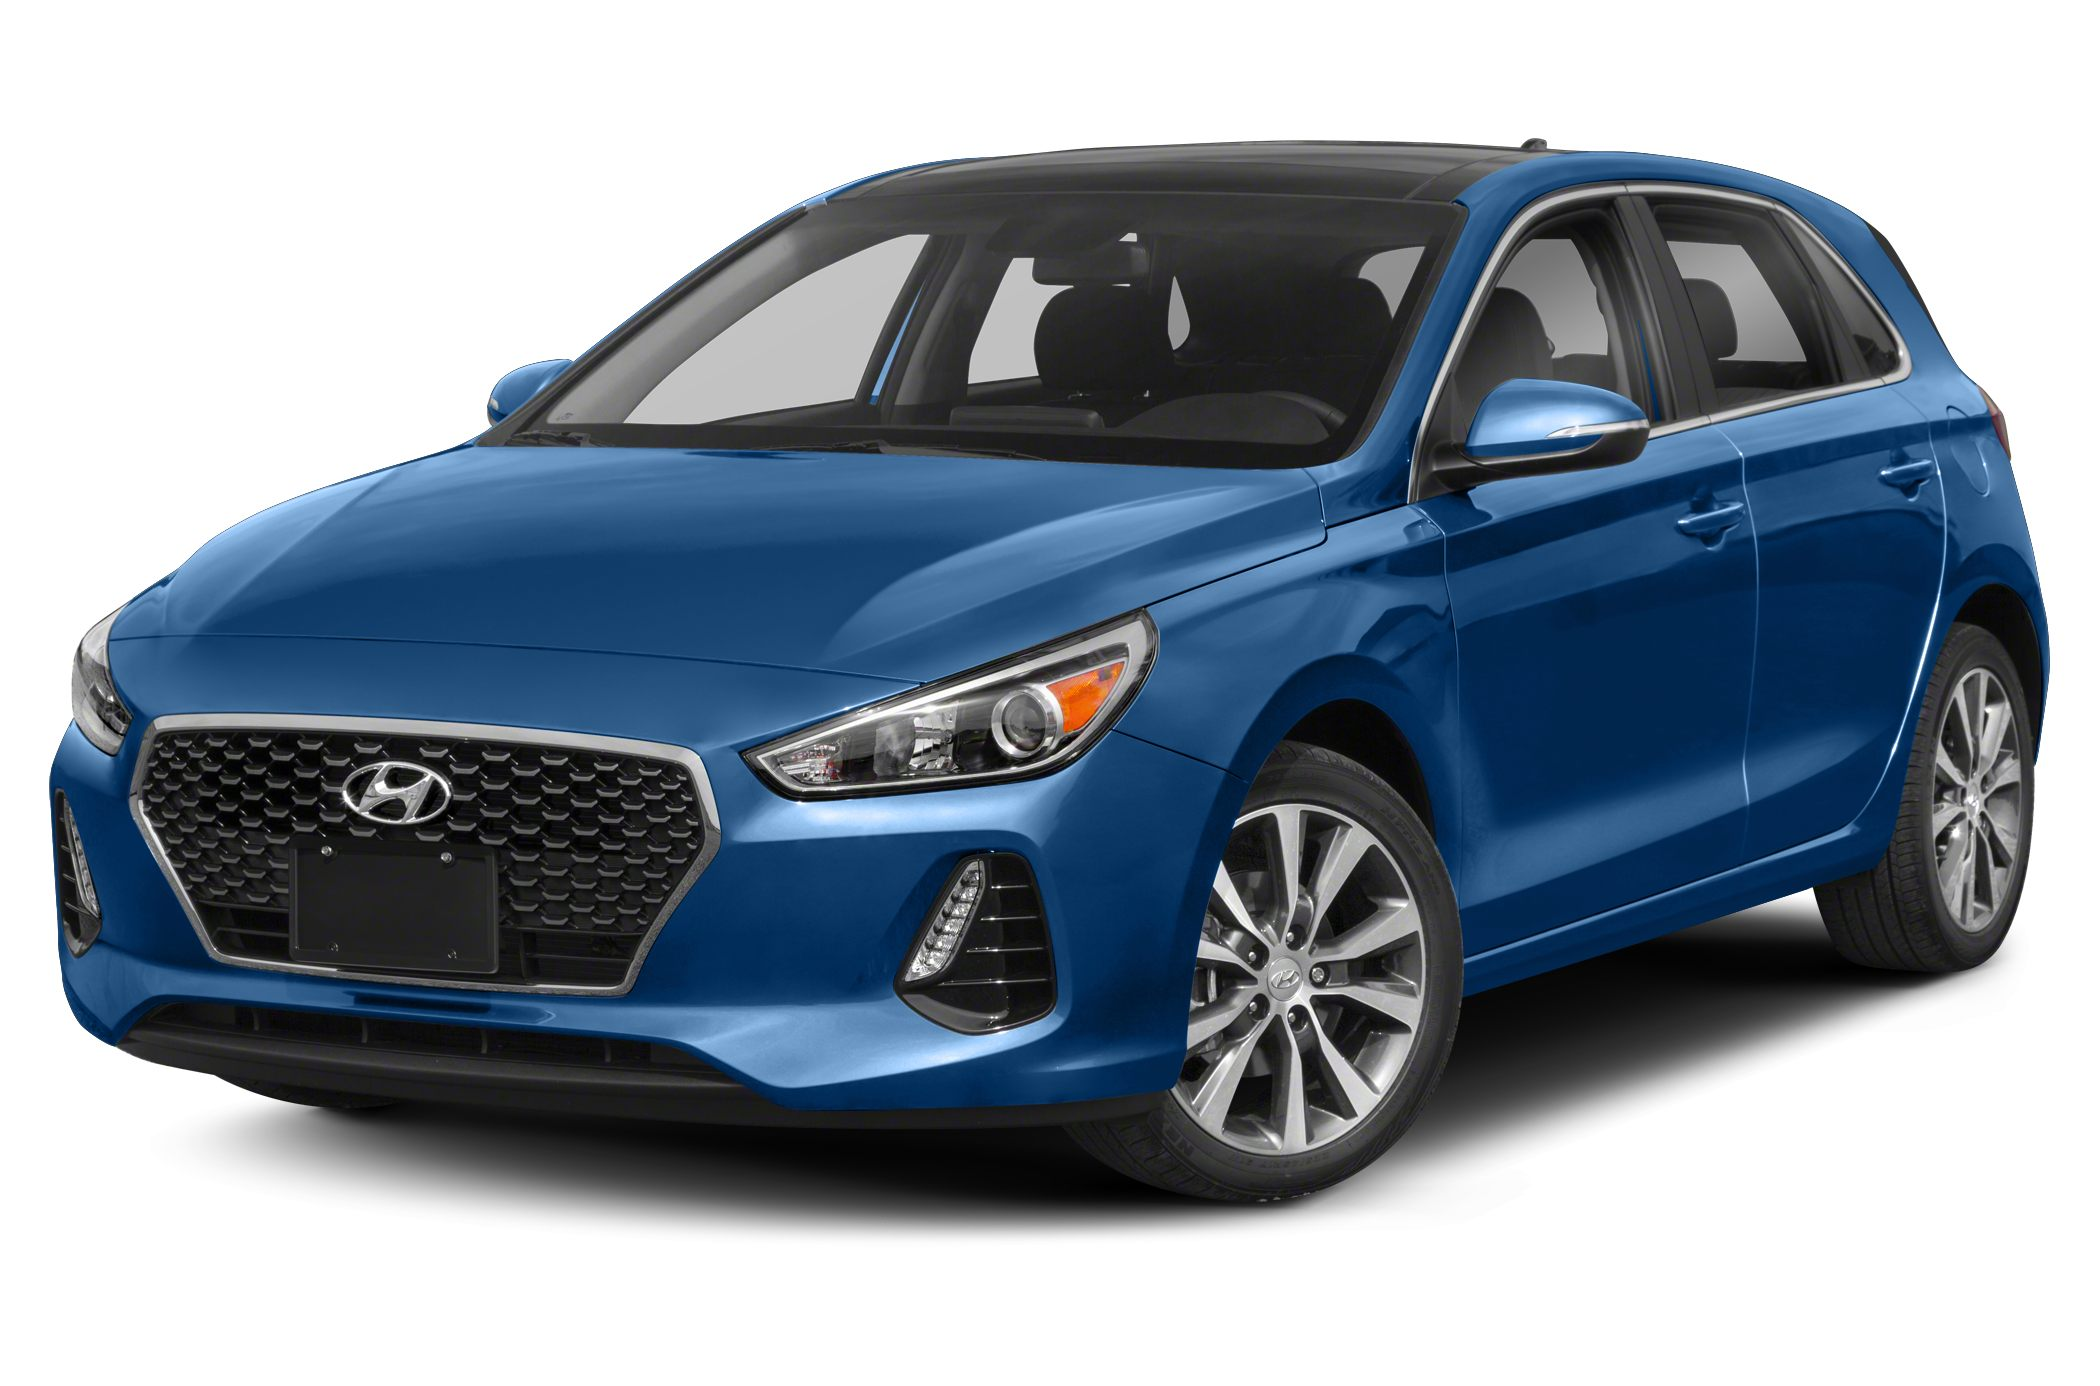 Hyundai Canada Incentives for the new 2018 Hyundai Elantra GT in Milton, Toronto, and the GTA